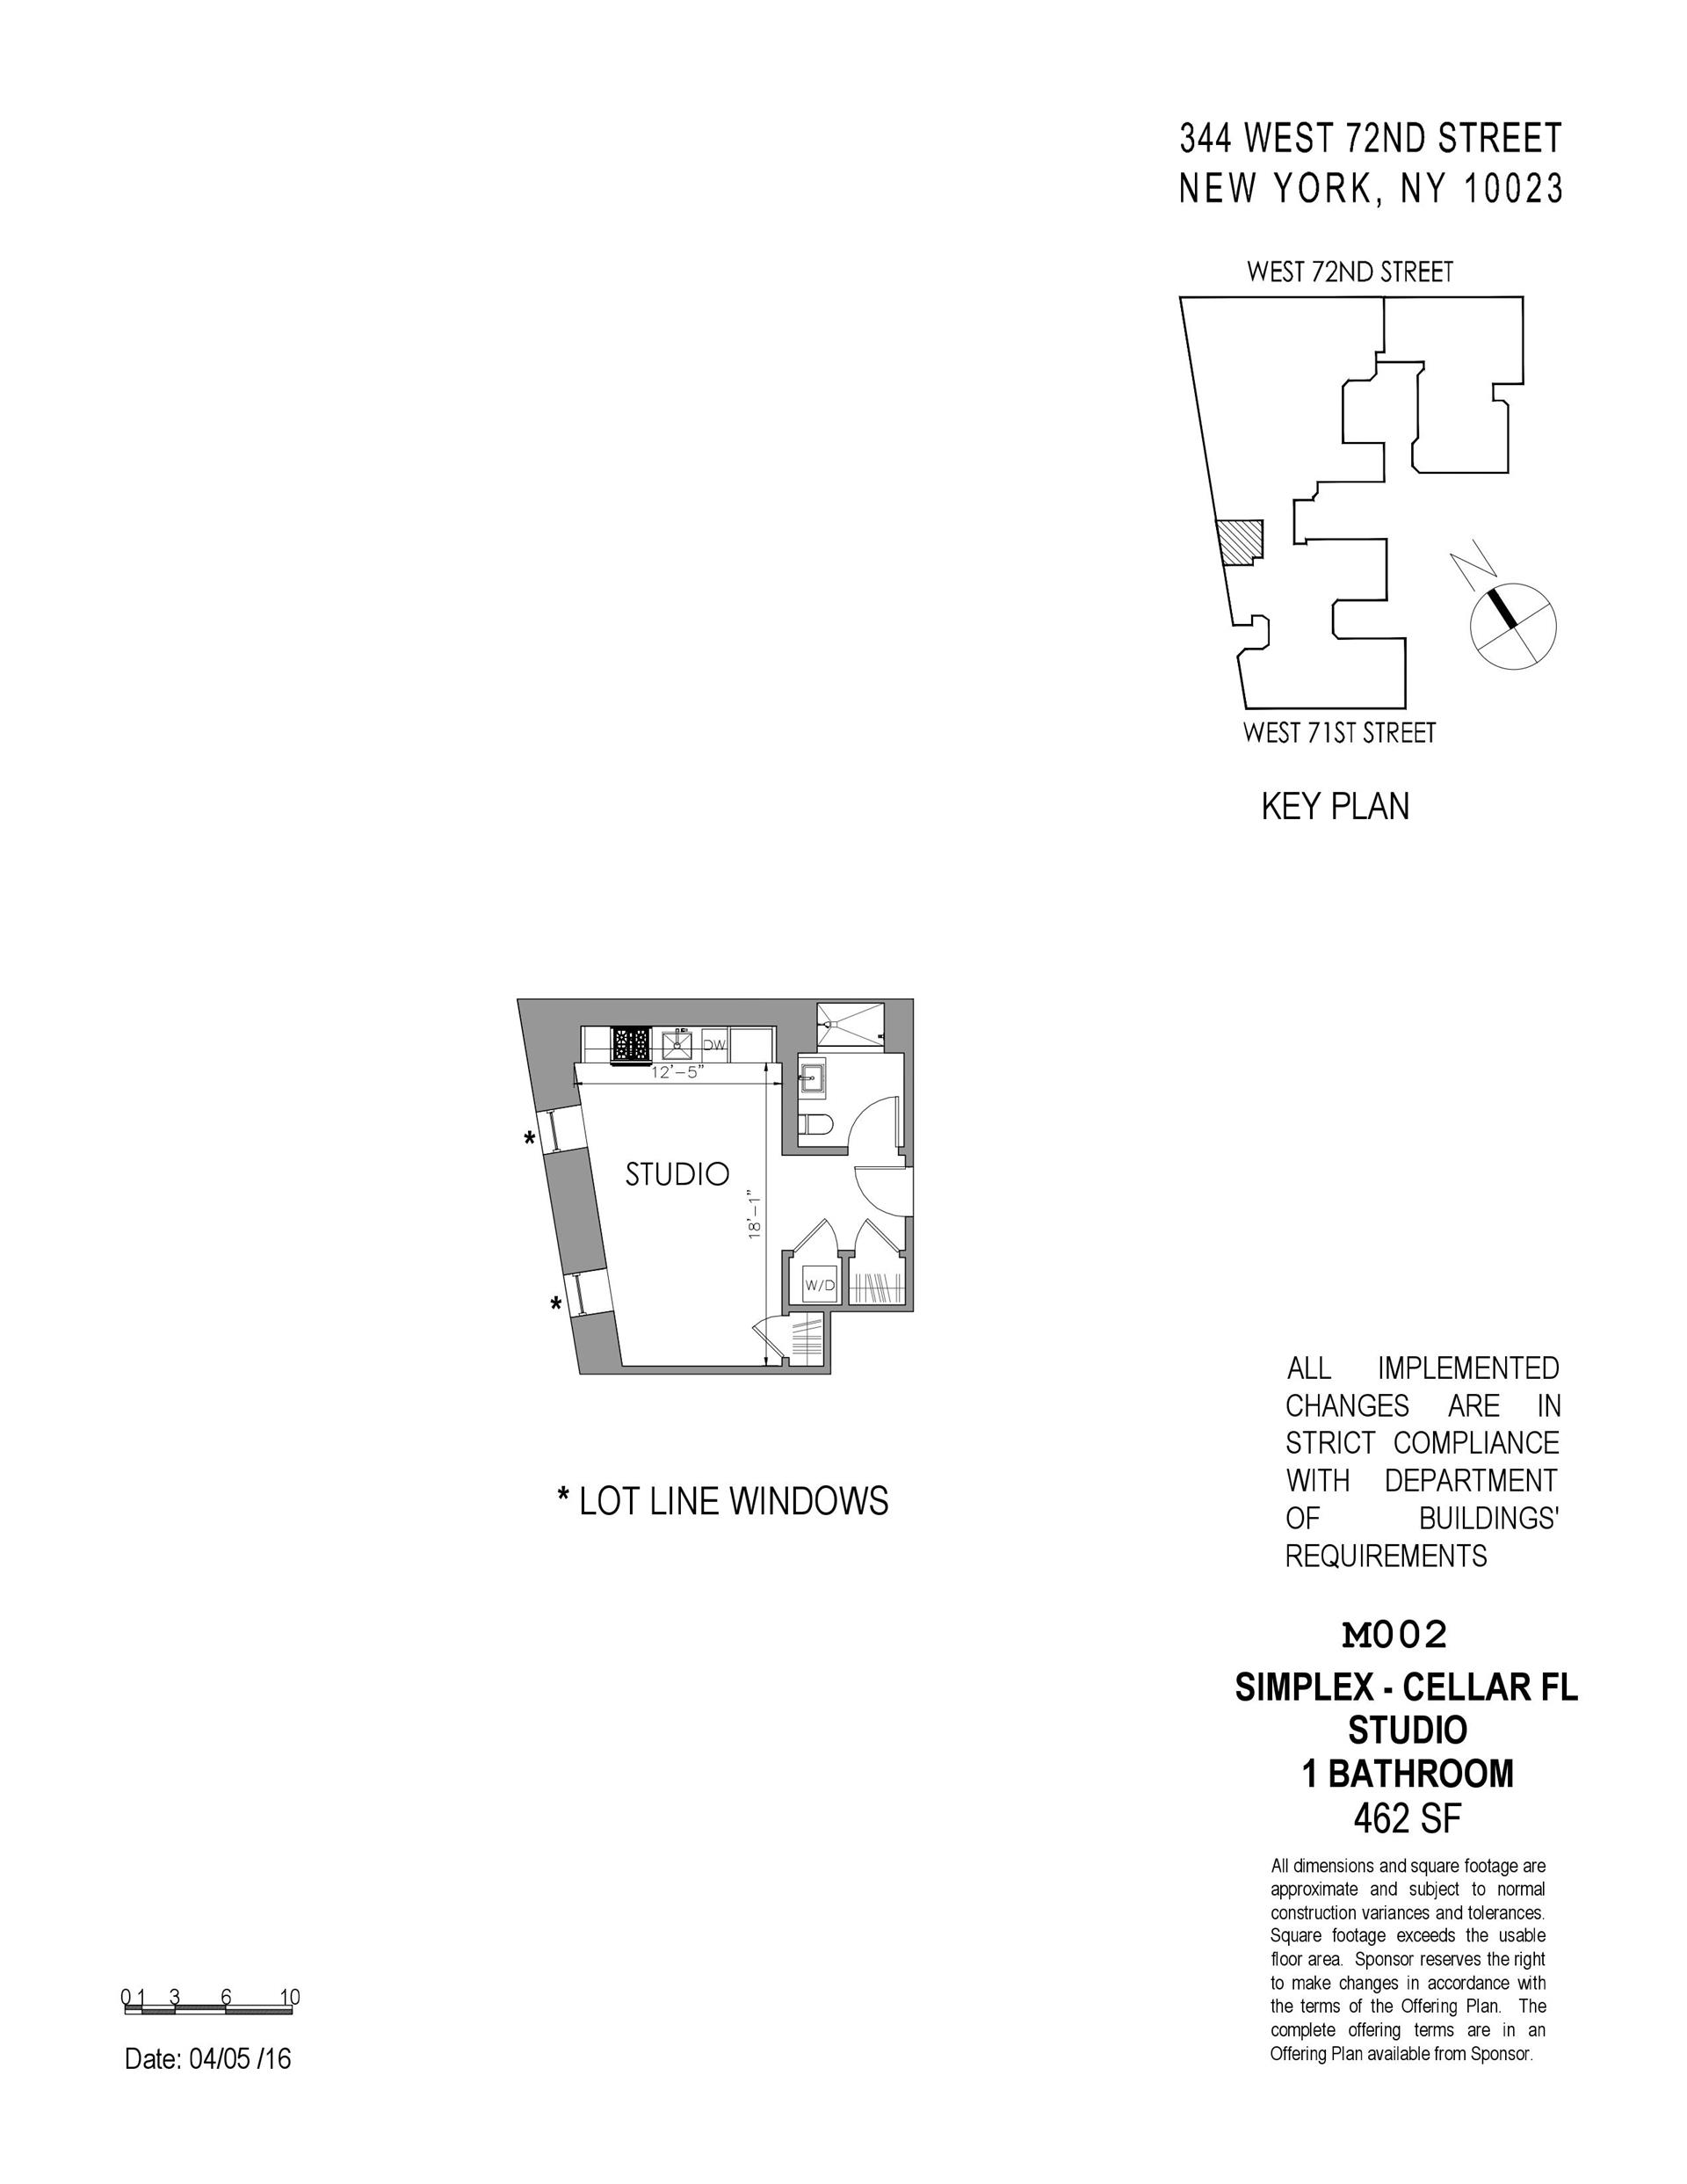 Floor plan of The Chatsworth, 344 West 72nd St, M002 - Upper West Side, New York